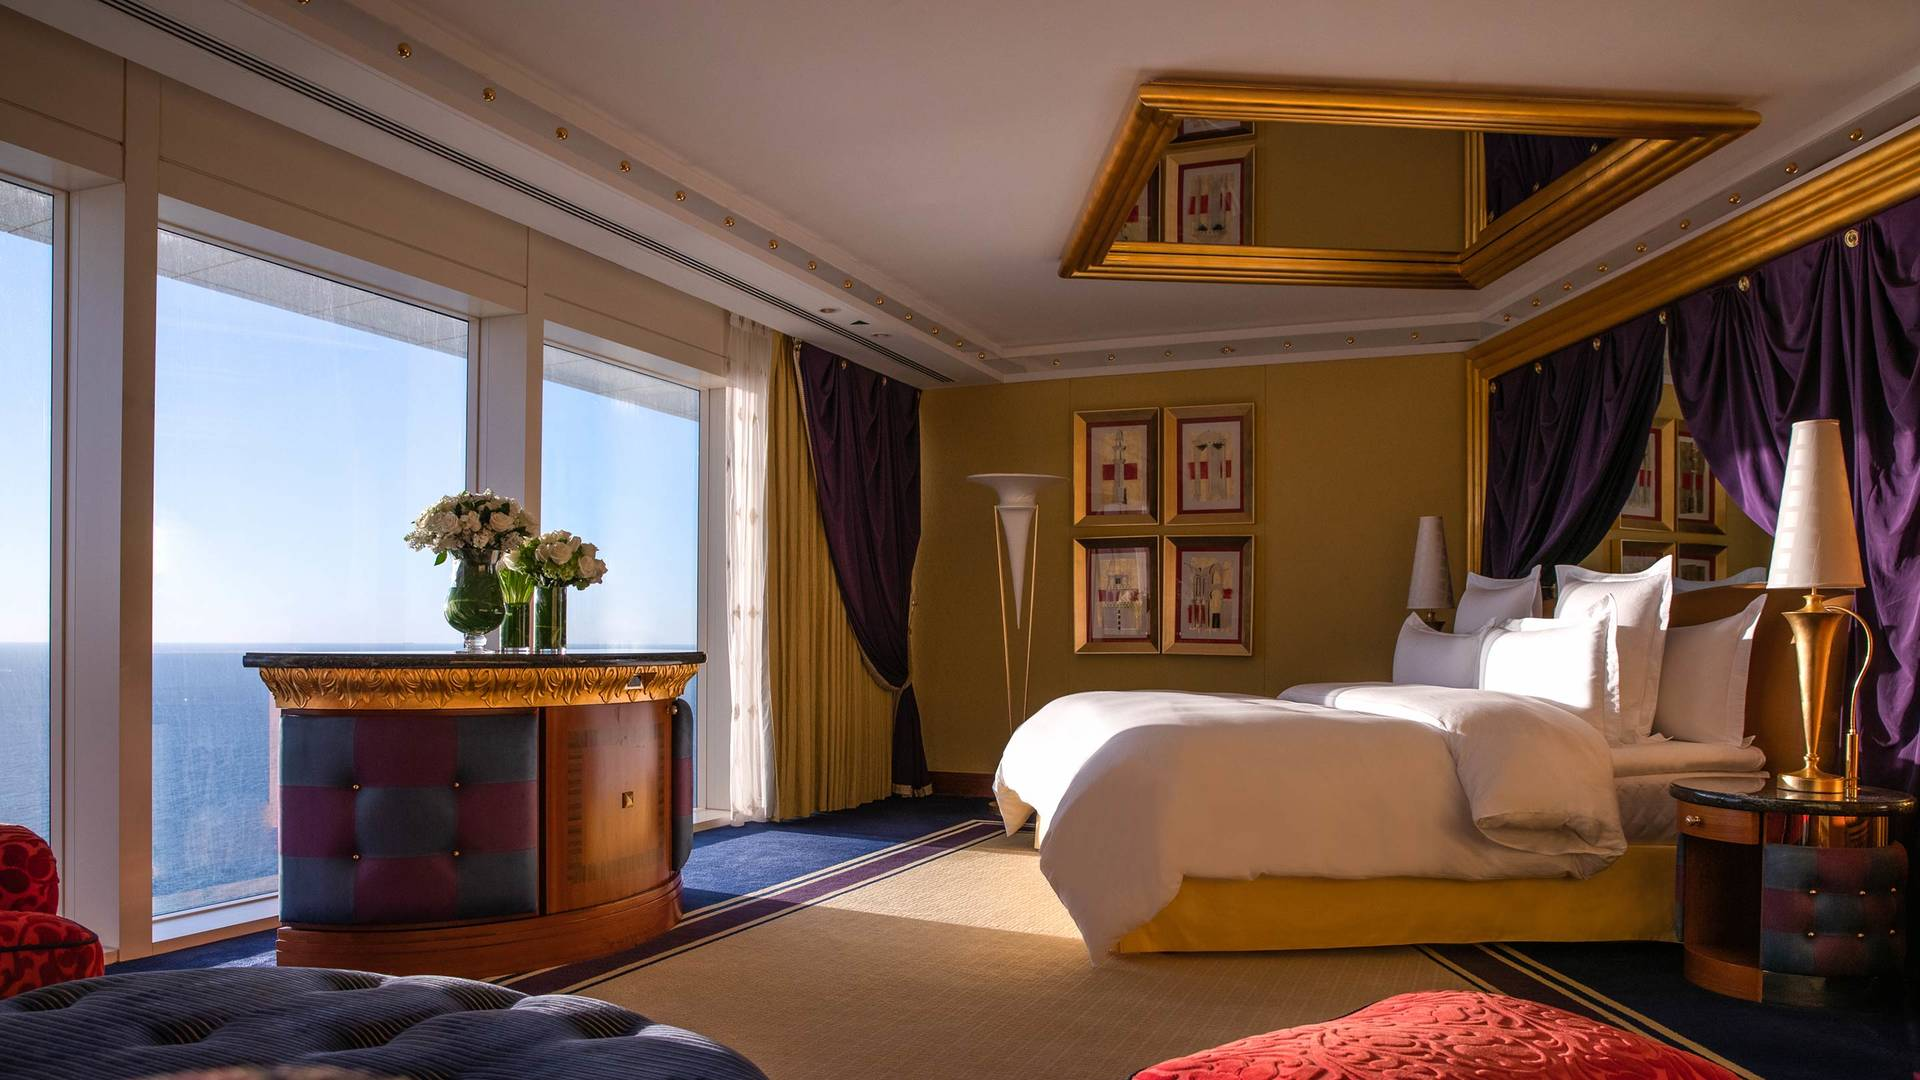 Jumeirah Burj Al Arab One bedroom Sky room view of whole room including bed and view from window